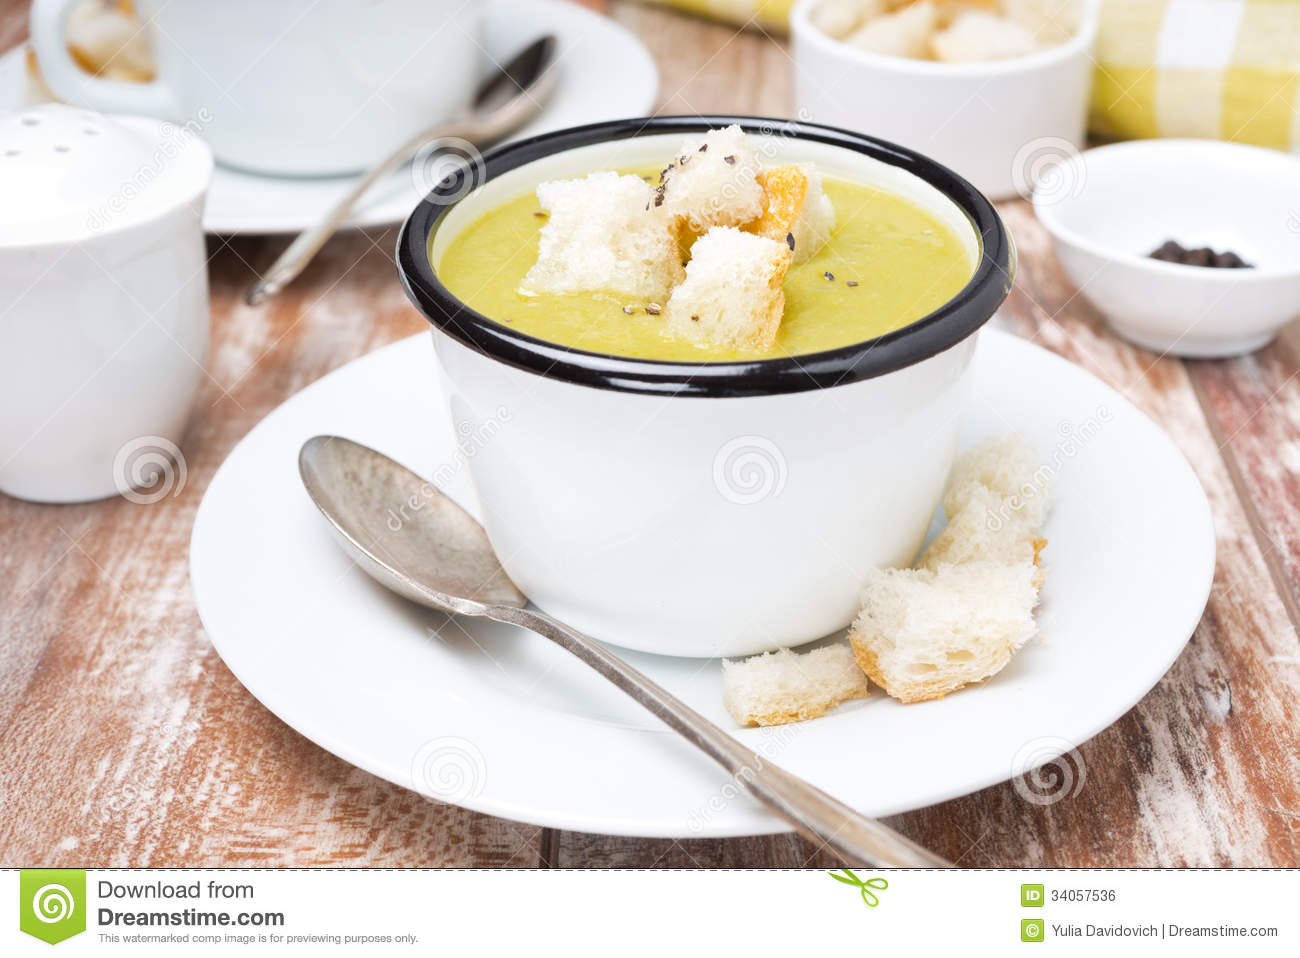 Spicy Zucchini Soup With Croutons Royalty Free Stock Image - Image ...